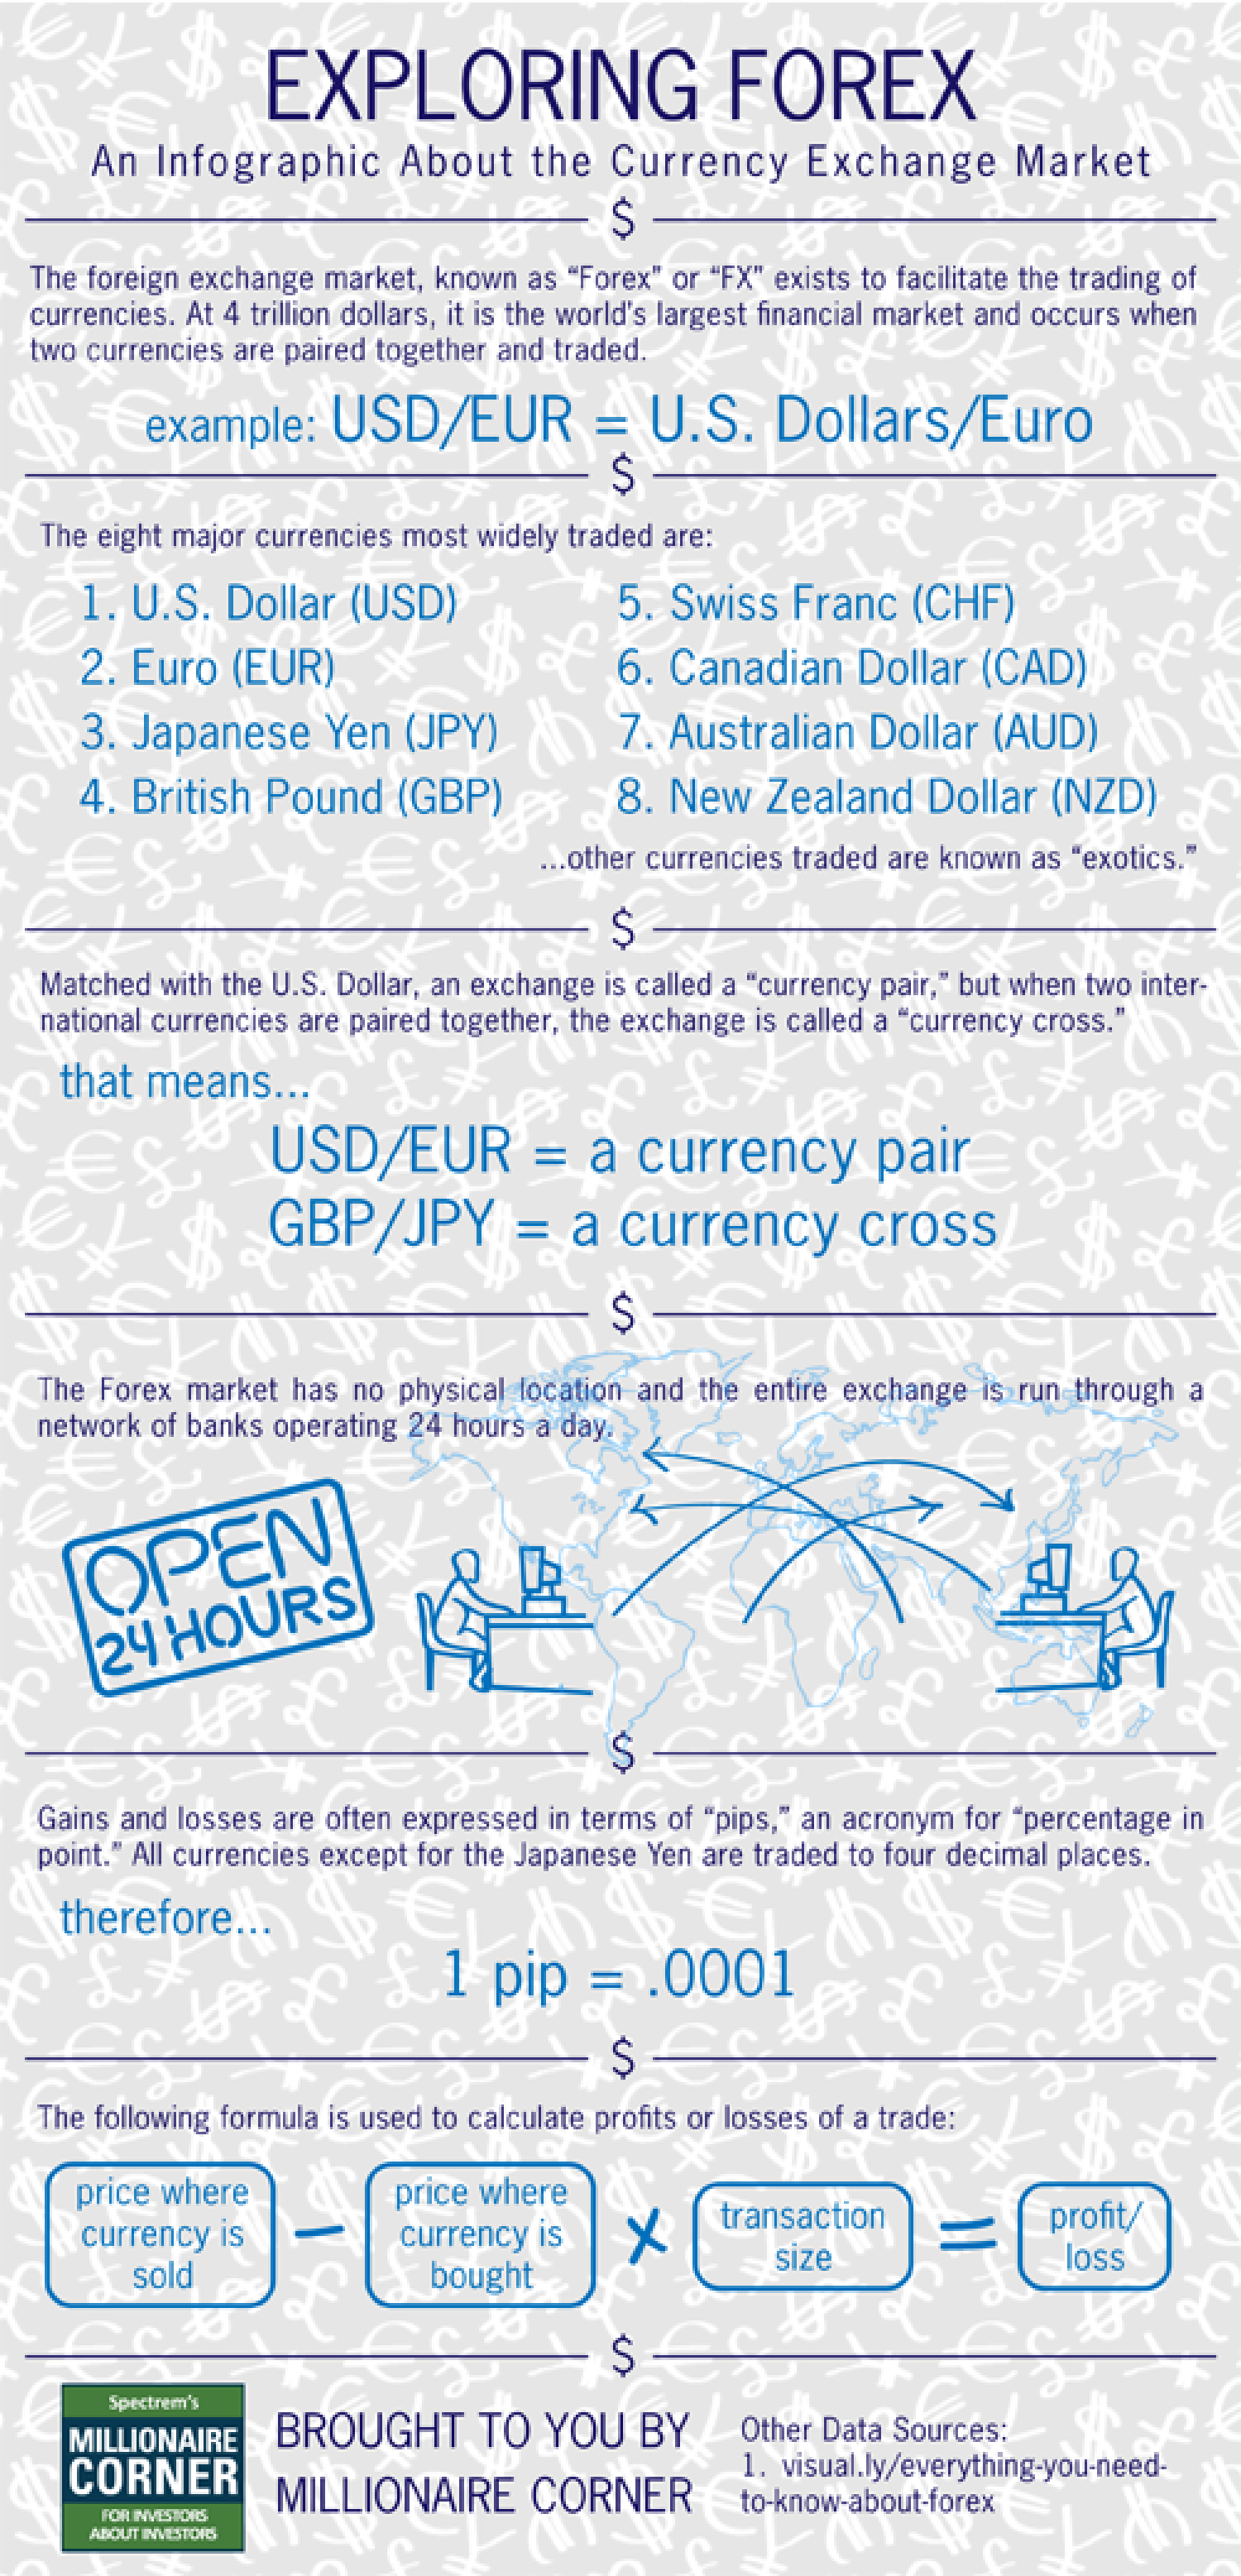 Exploring Forex Infographic